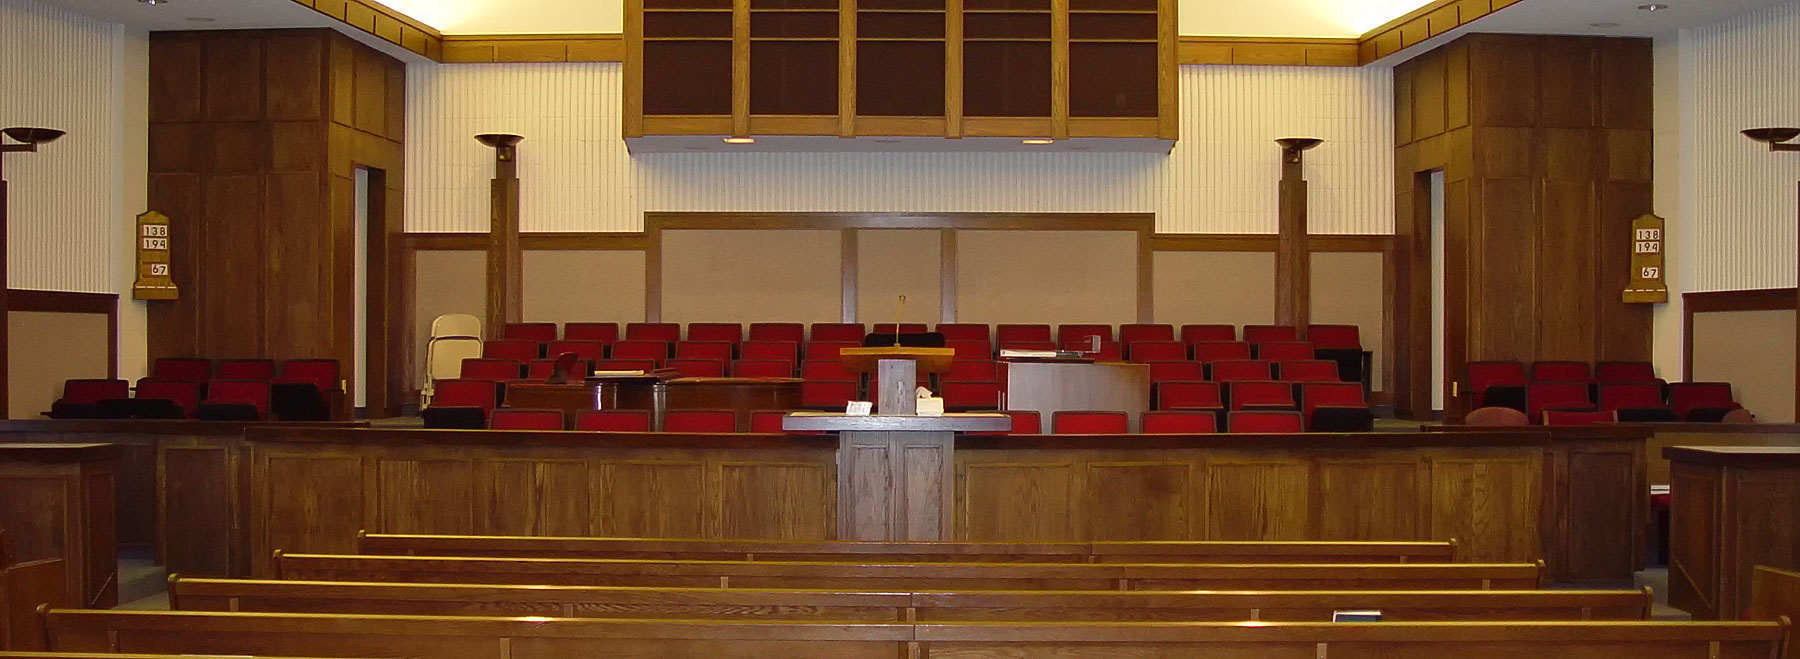 One of many LDS Churches where Allstar has supplied and installed an audiovisual system.